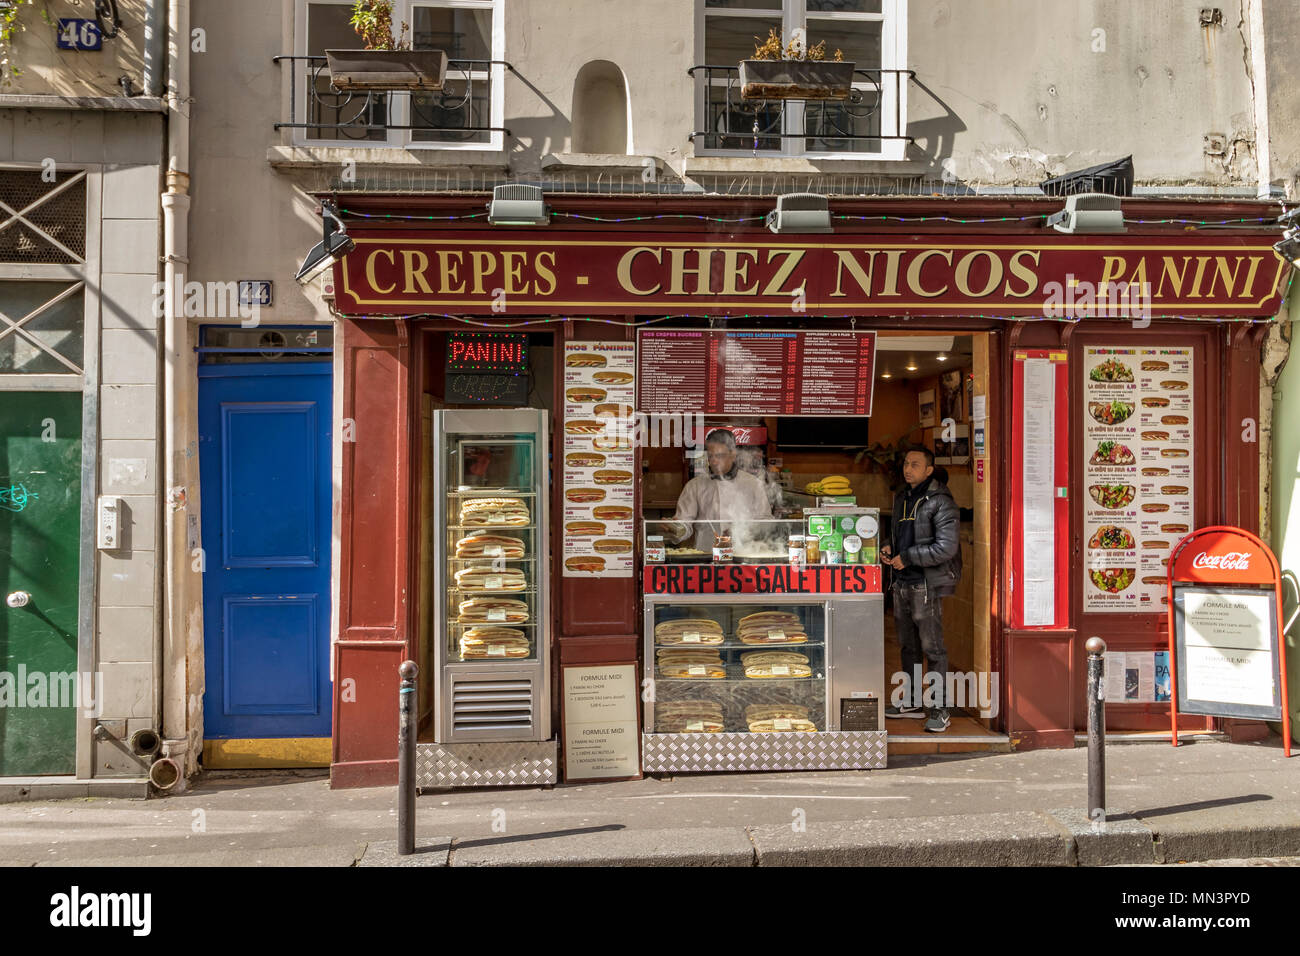 Man buying crepes at Chez Nico's Creperie ,Rue Mouffetard, Paris, France - Stock Image